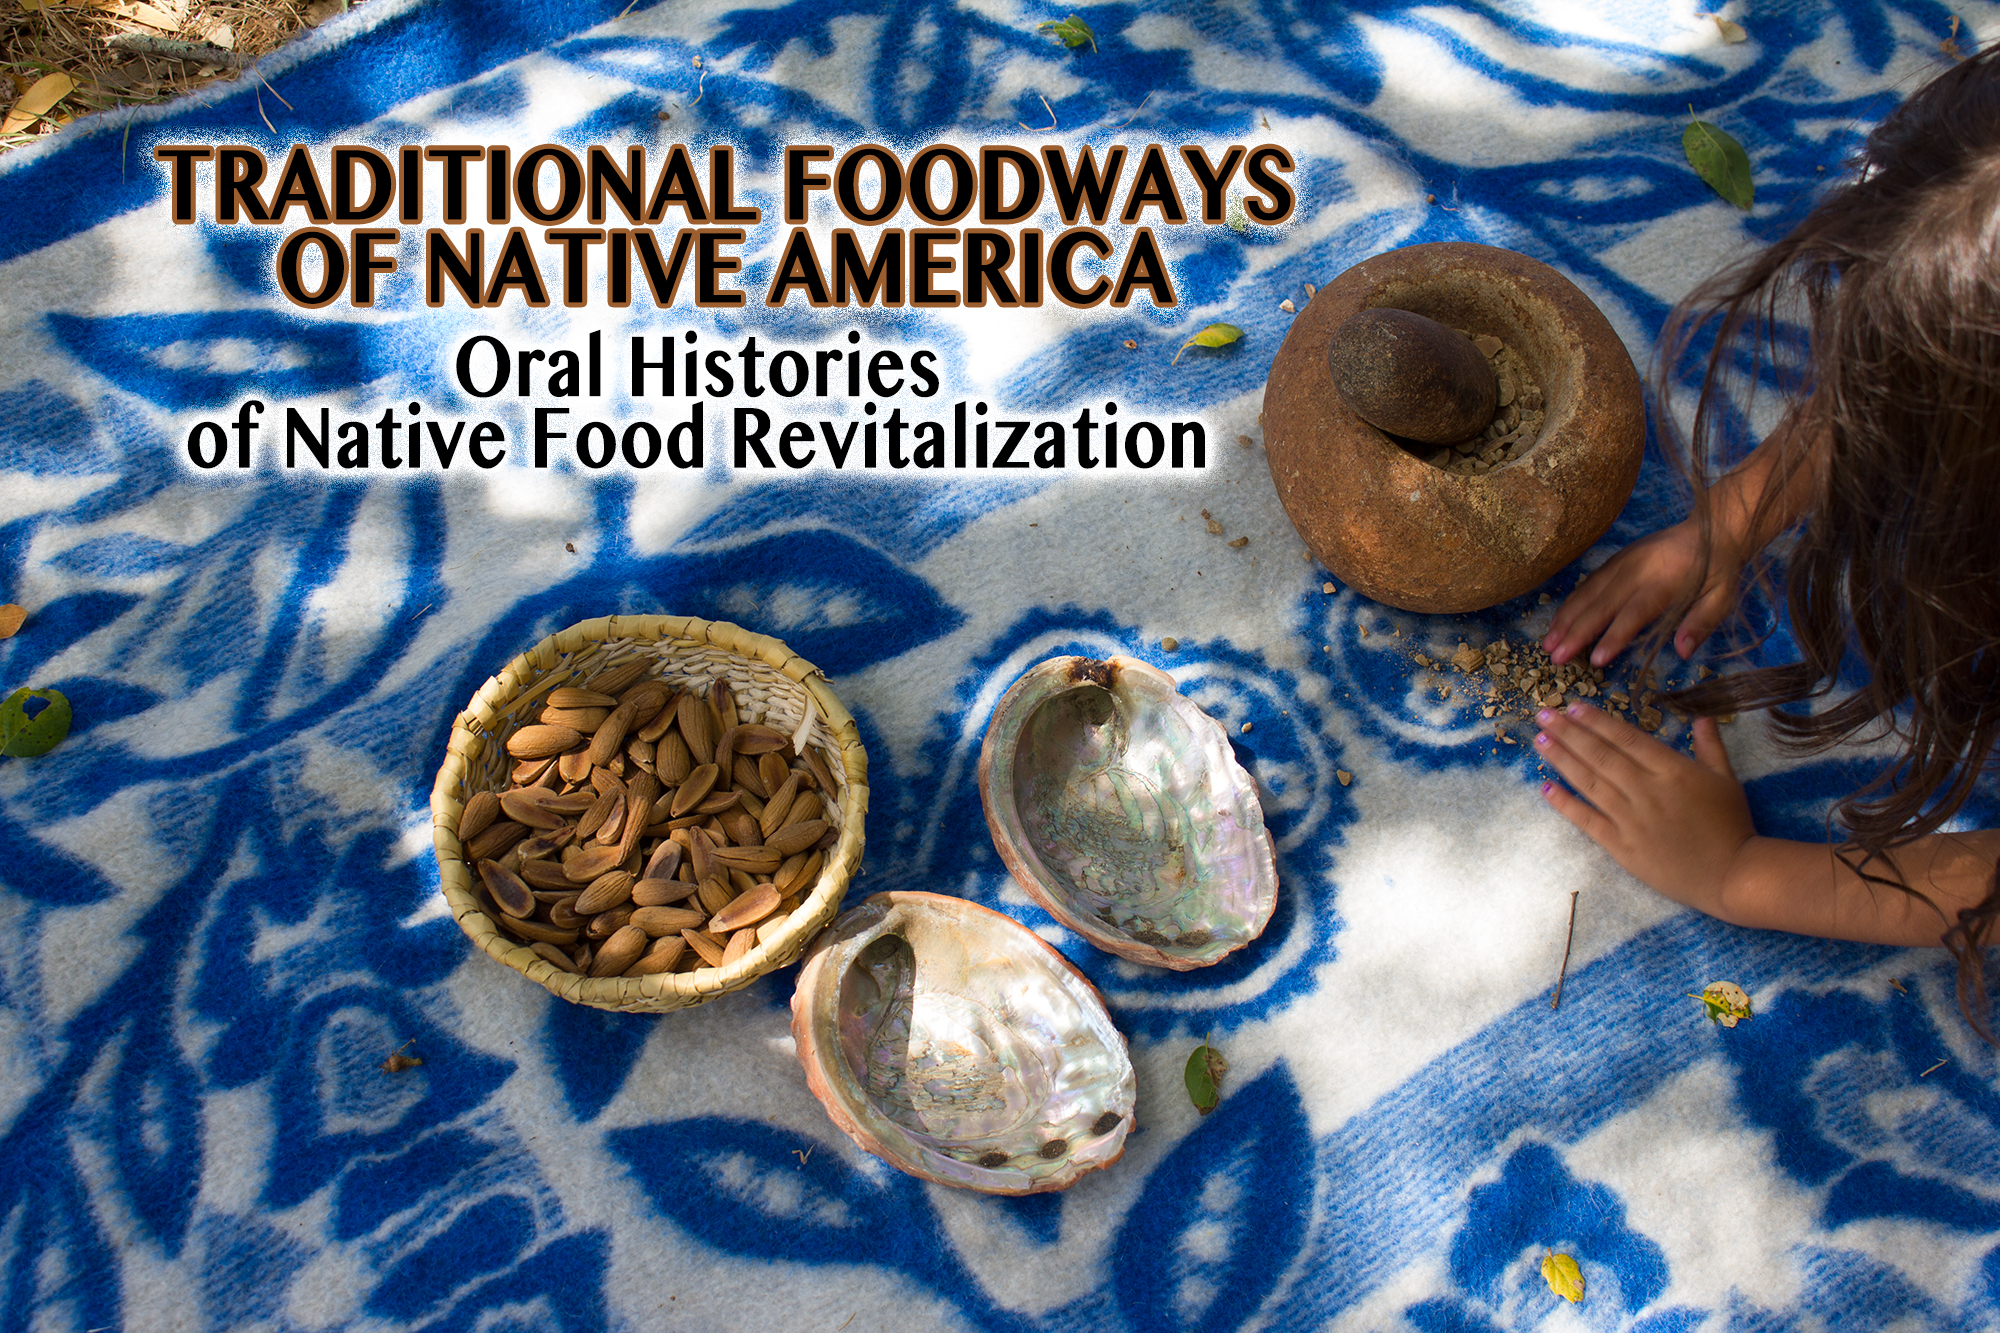 Traditional Foodways of Native America Cover IMG_1561.jpg